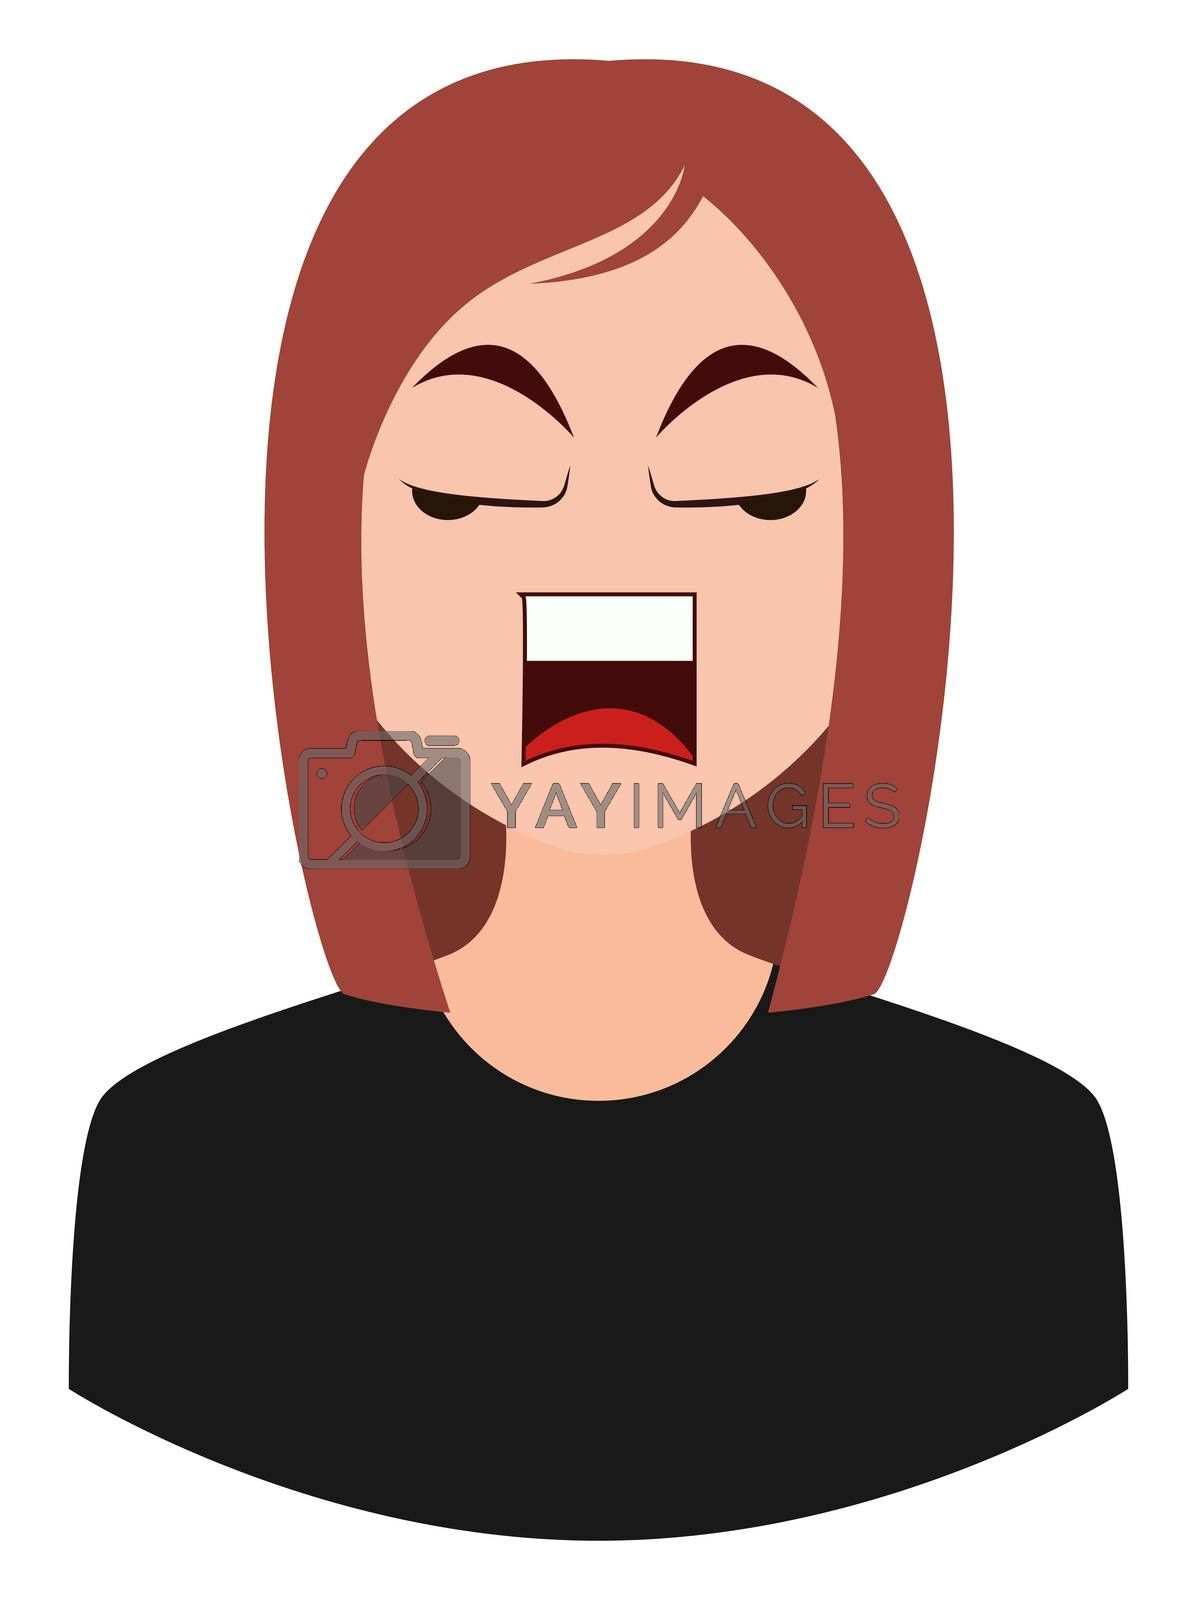 Angry girl emoji, illustration, vector on white background